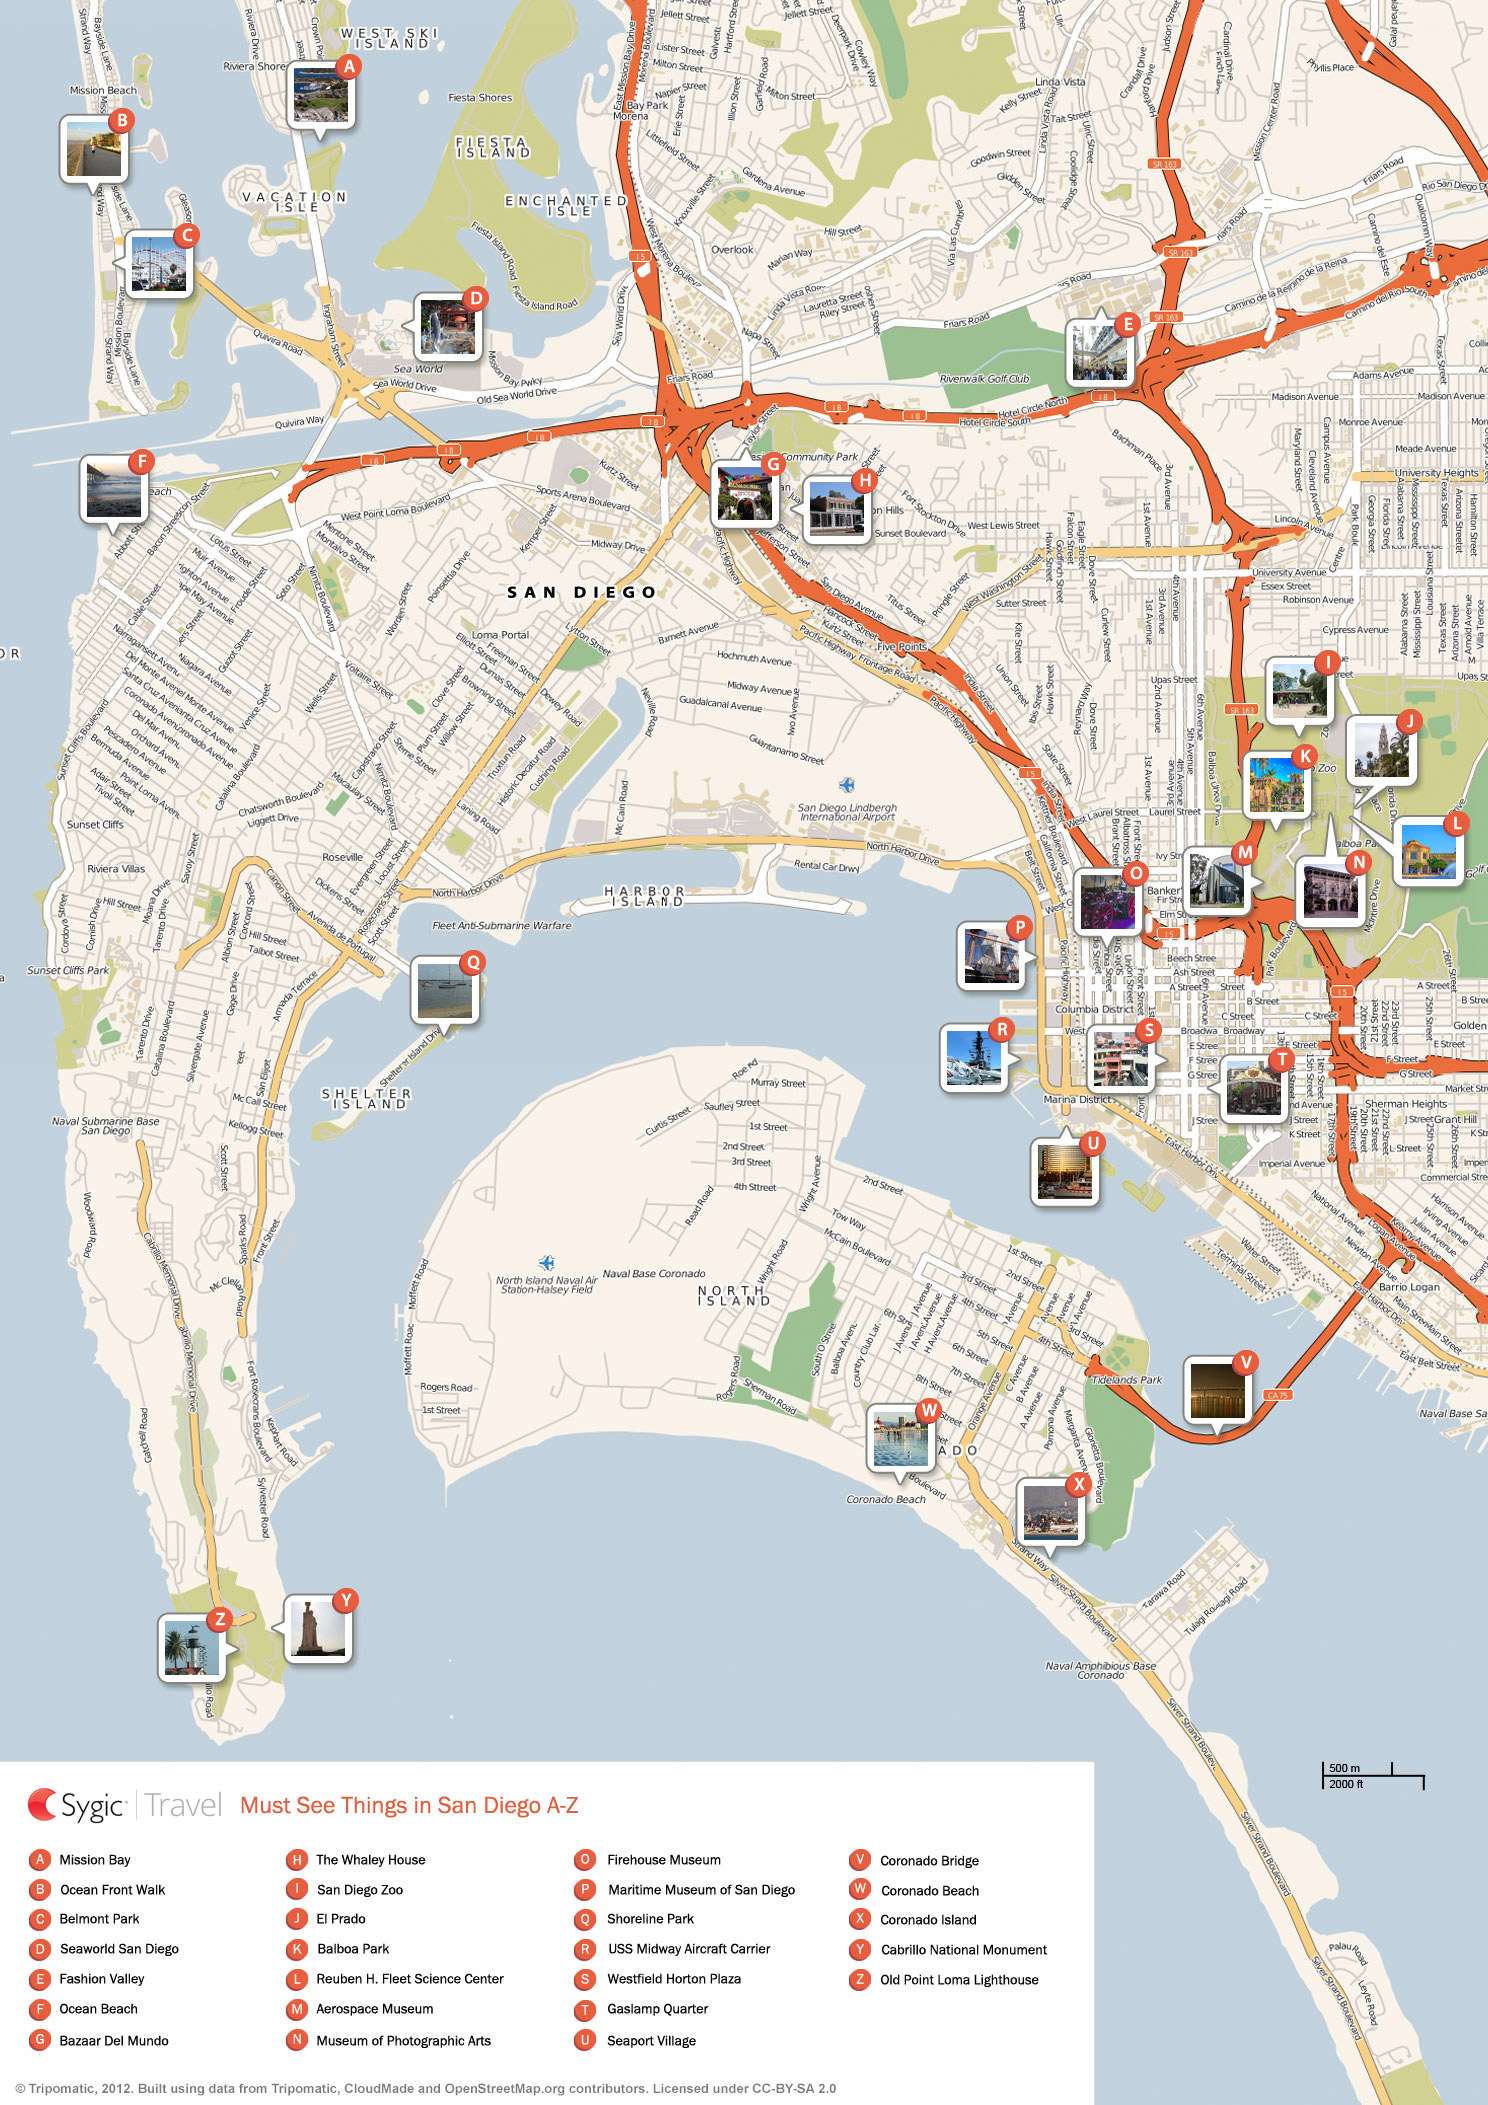 San Diego Printable Tourist Map – Map Of Rome Showing Tourist Attractions